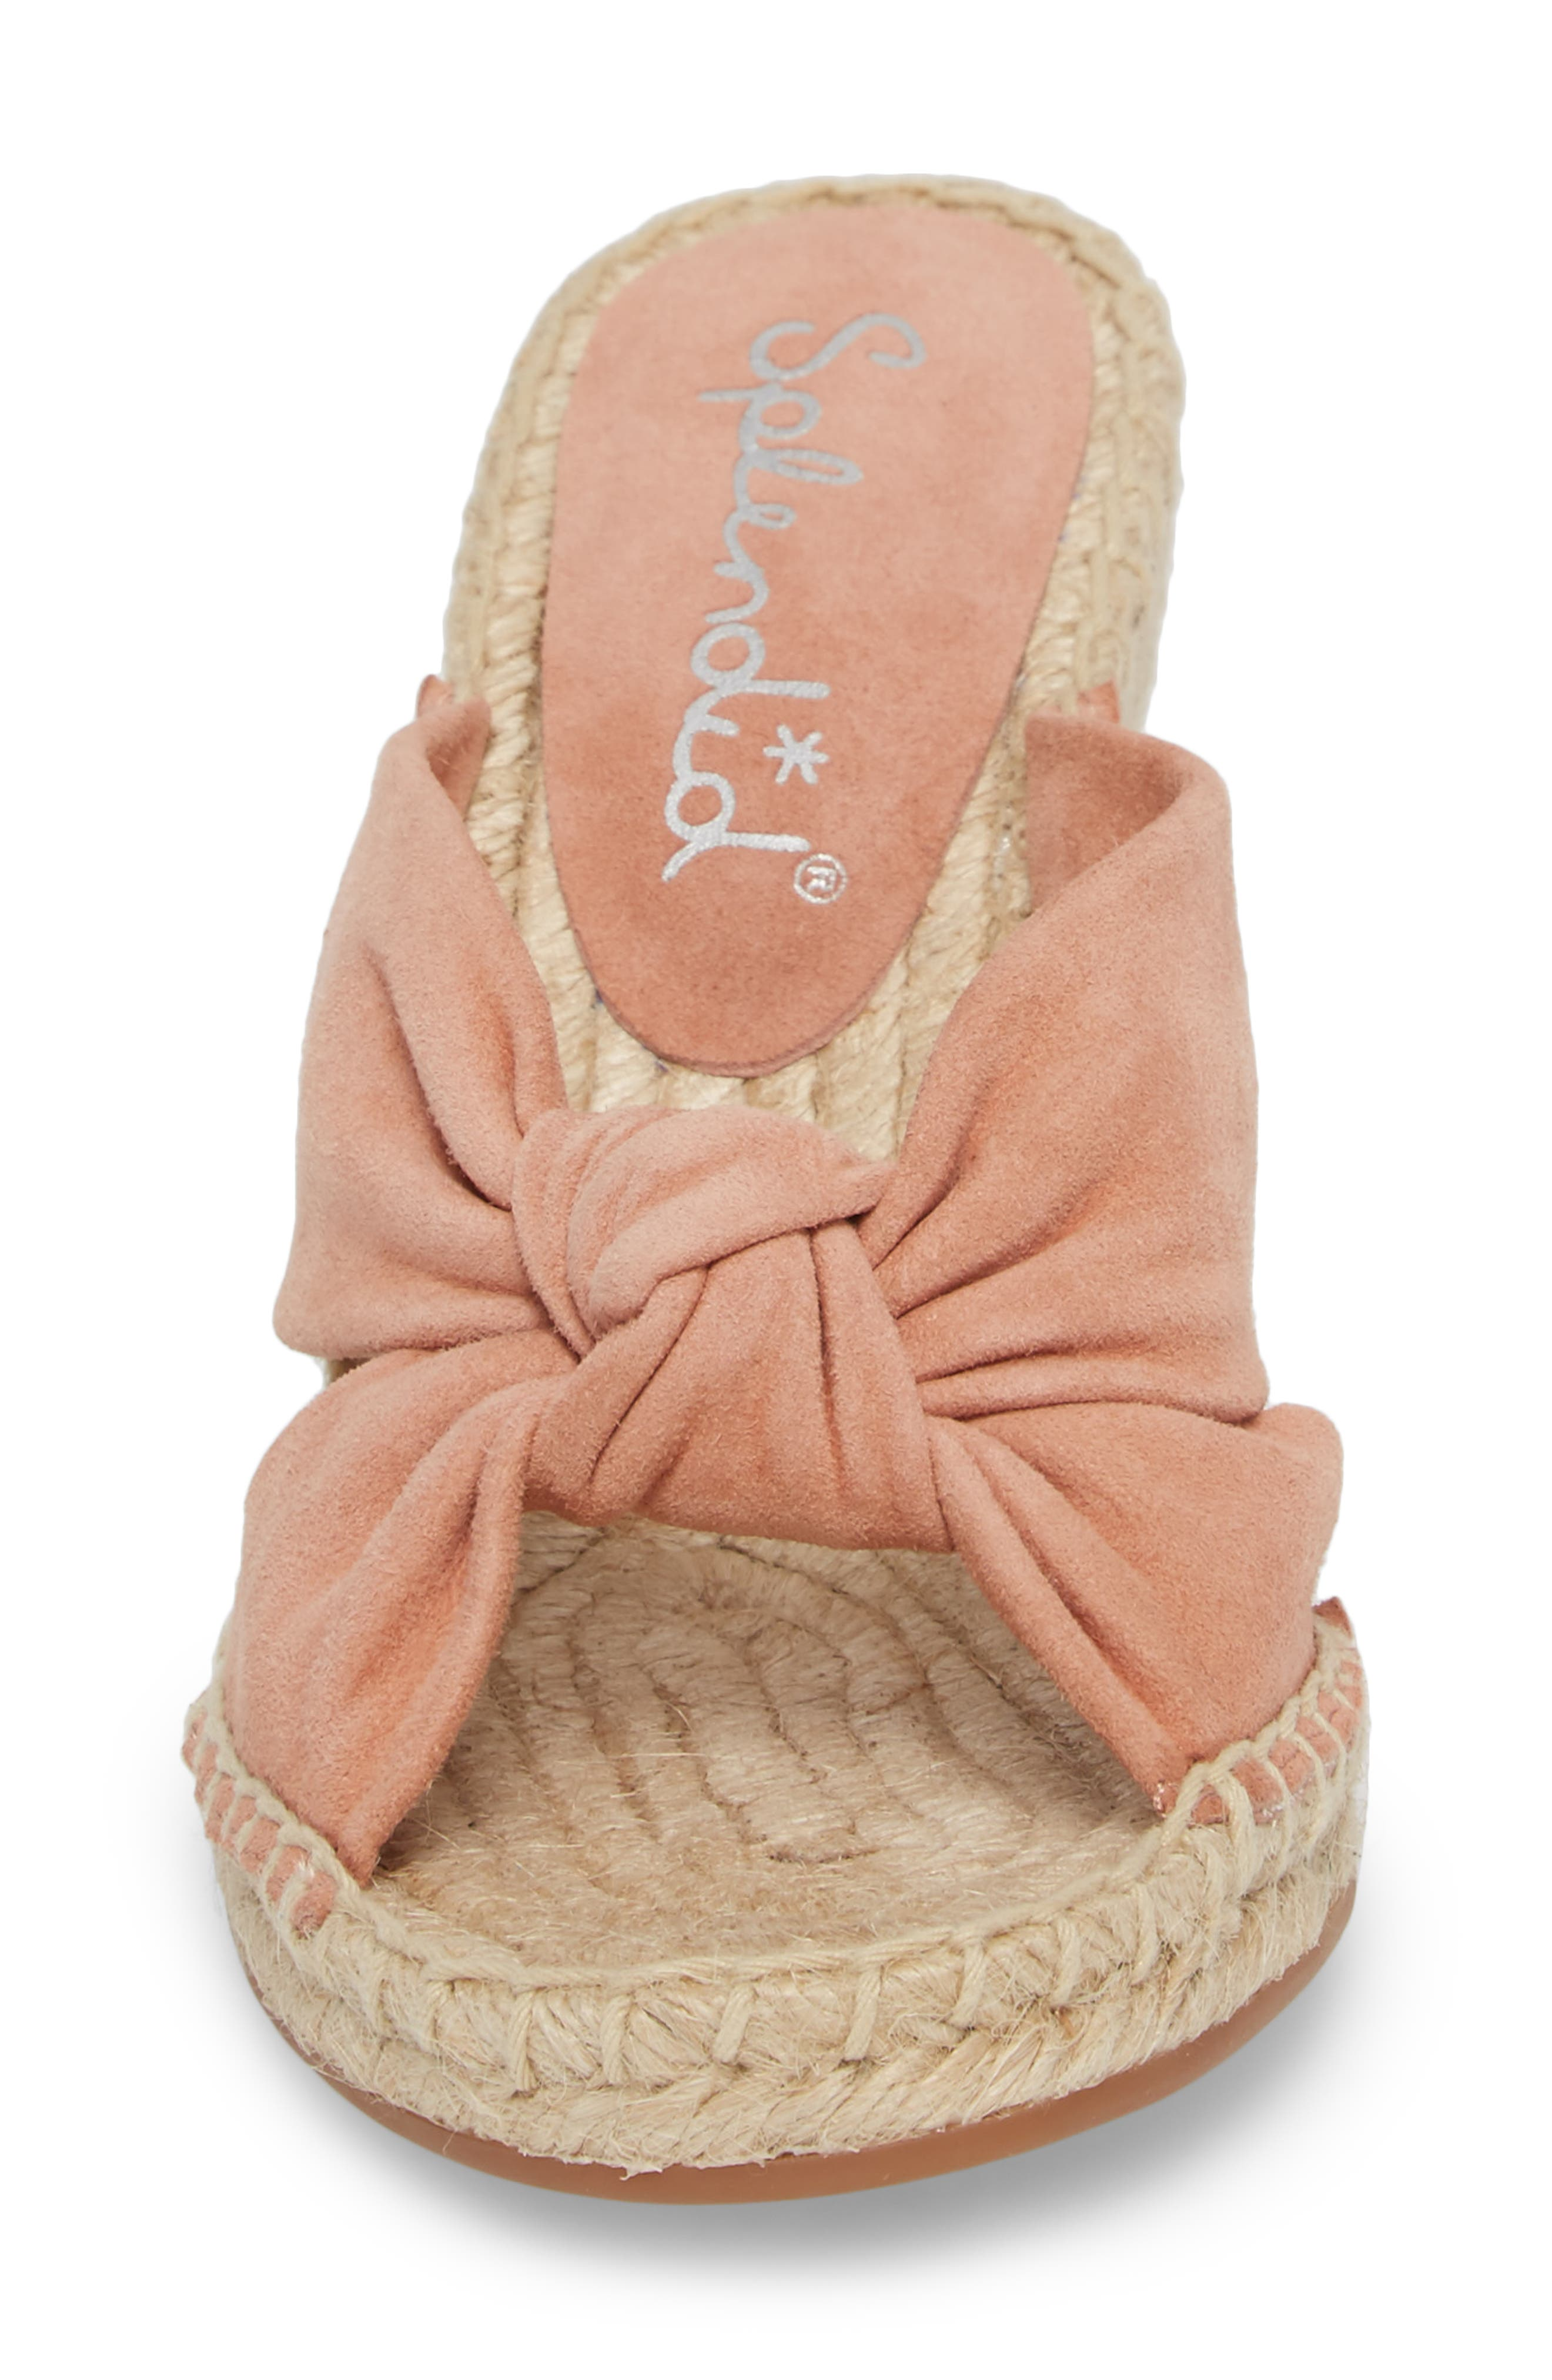 Bautista Knotted Wedge Sandal,                             Alternate thumbnail 4, color,                             DARK BLUSH SUEDE